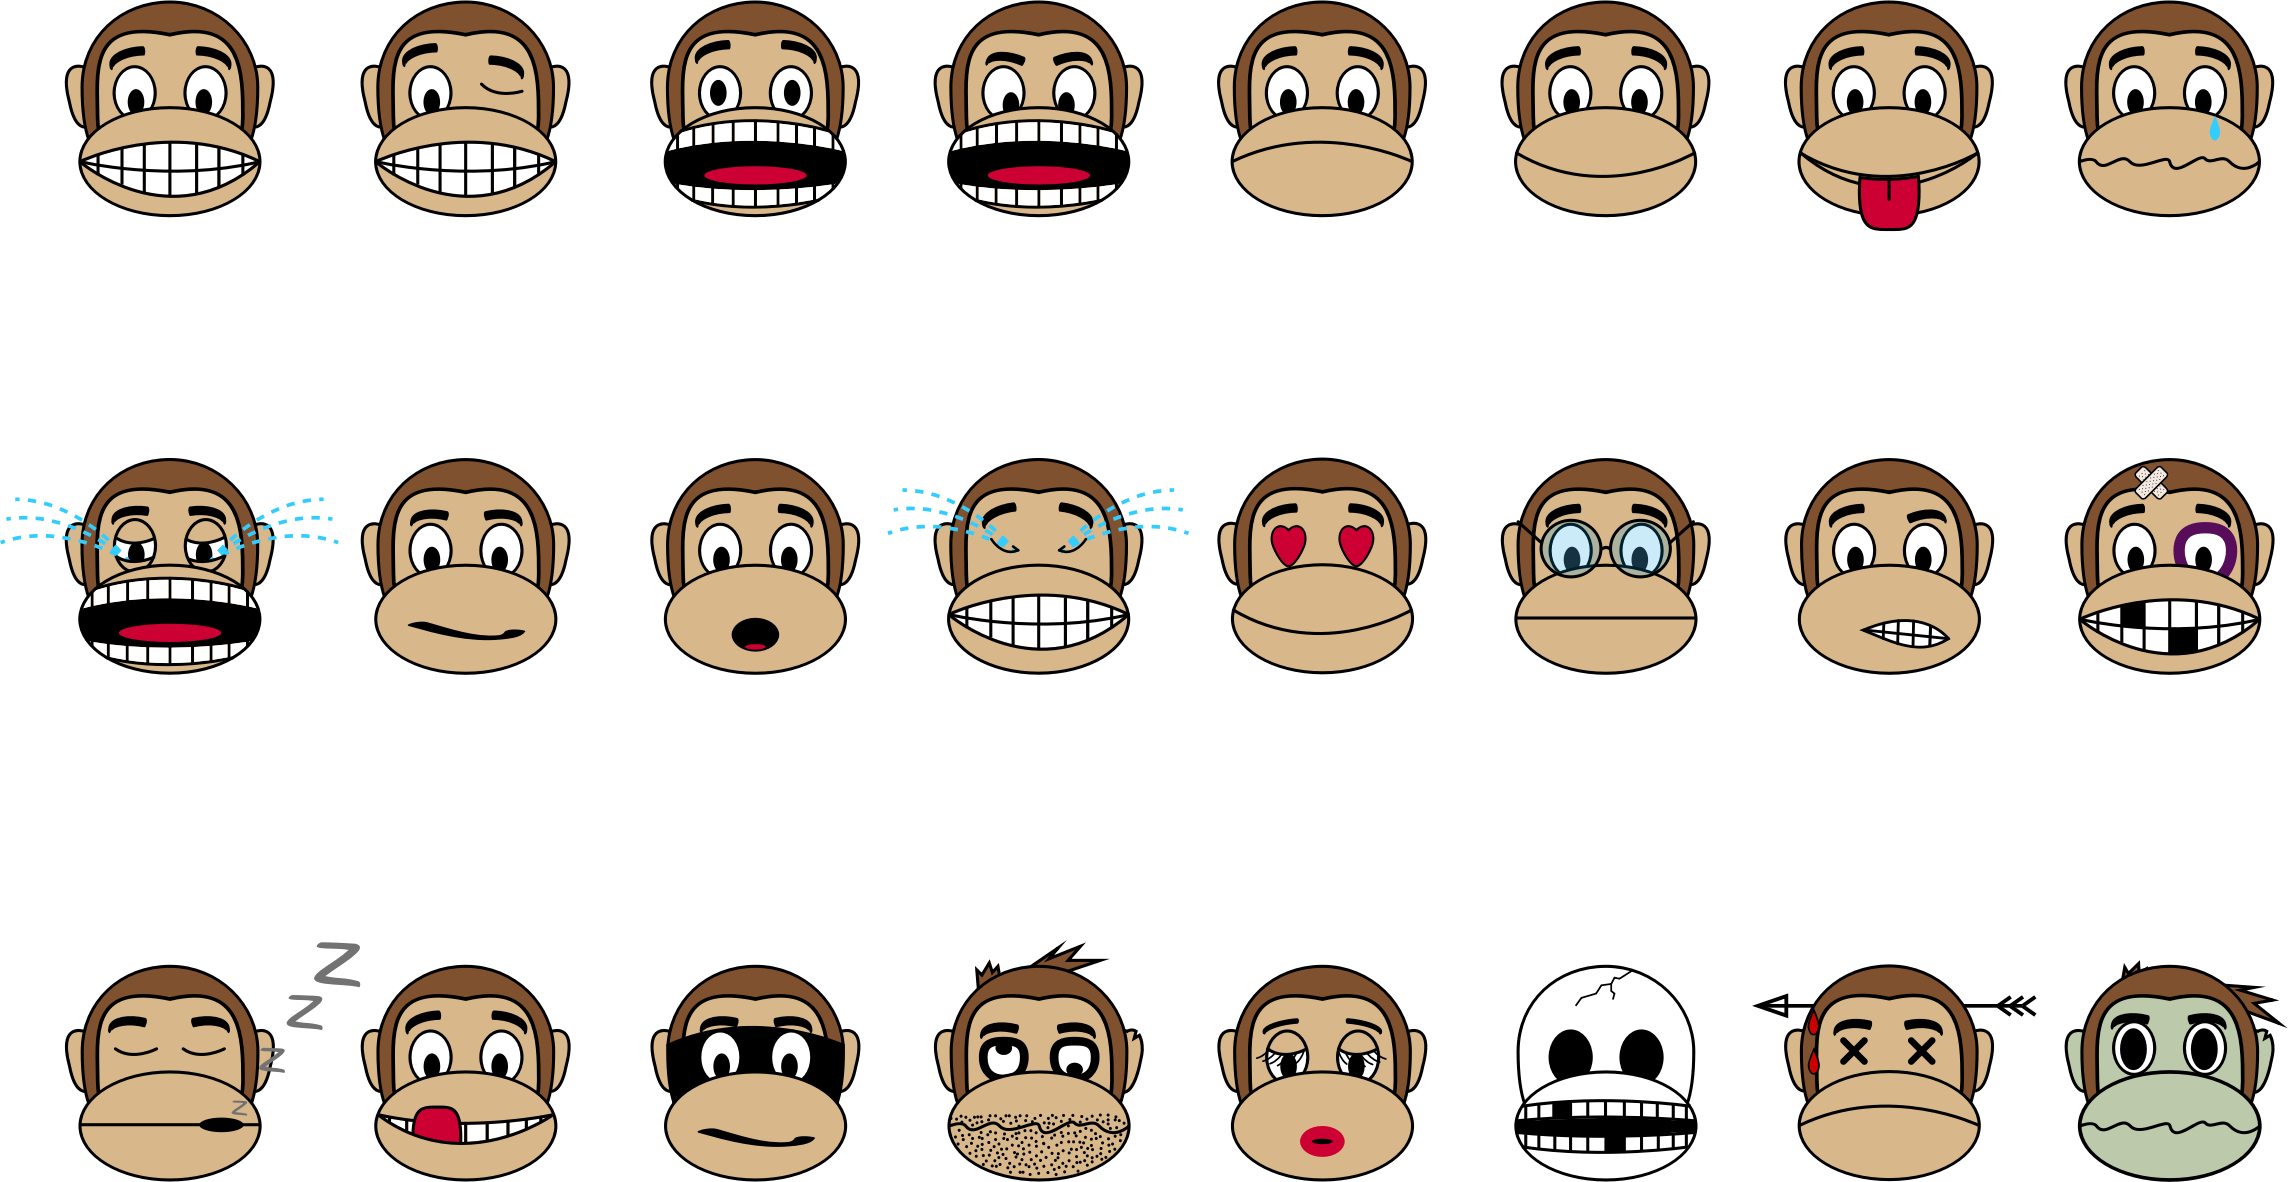 Monkey Emoji - Collection by buzzbomb